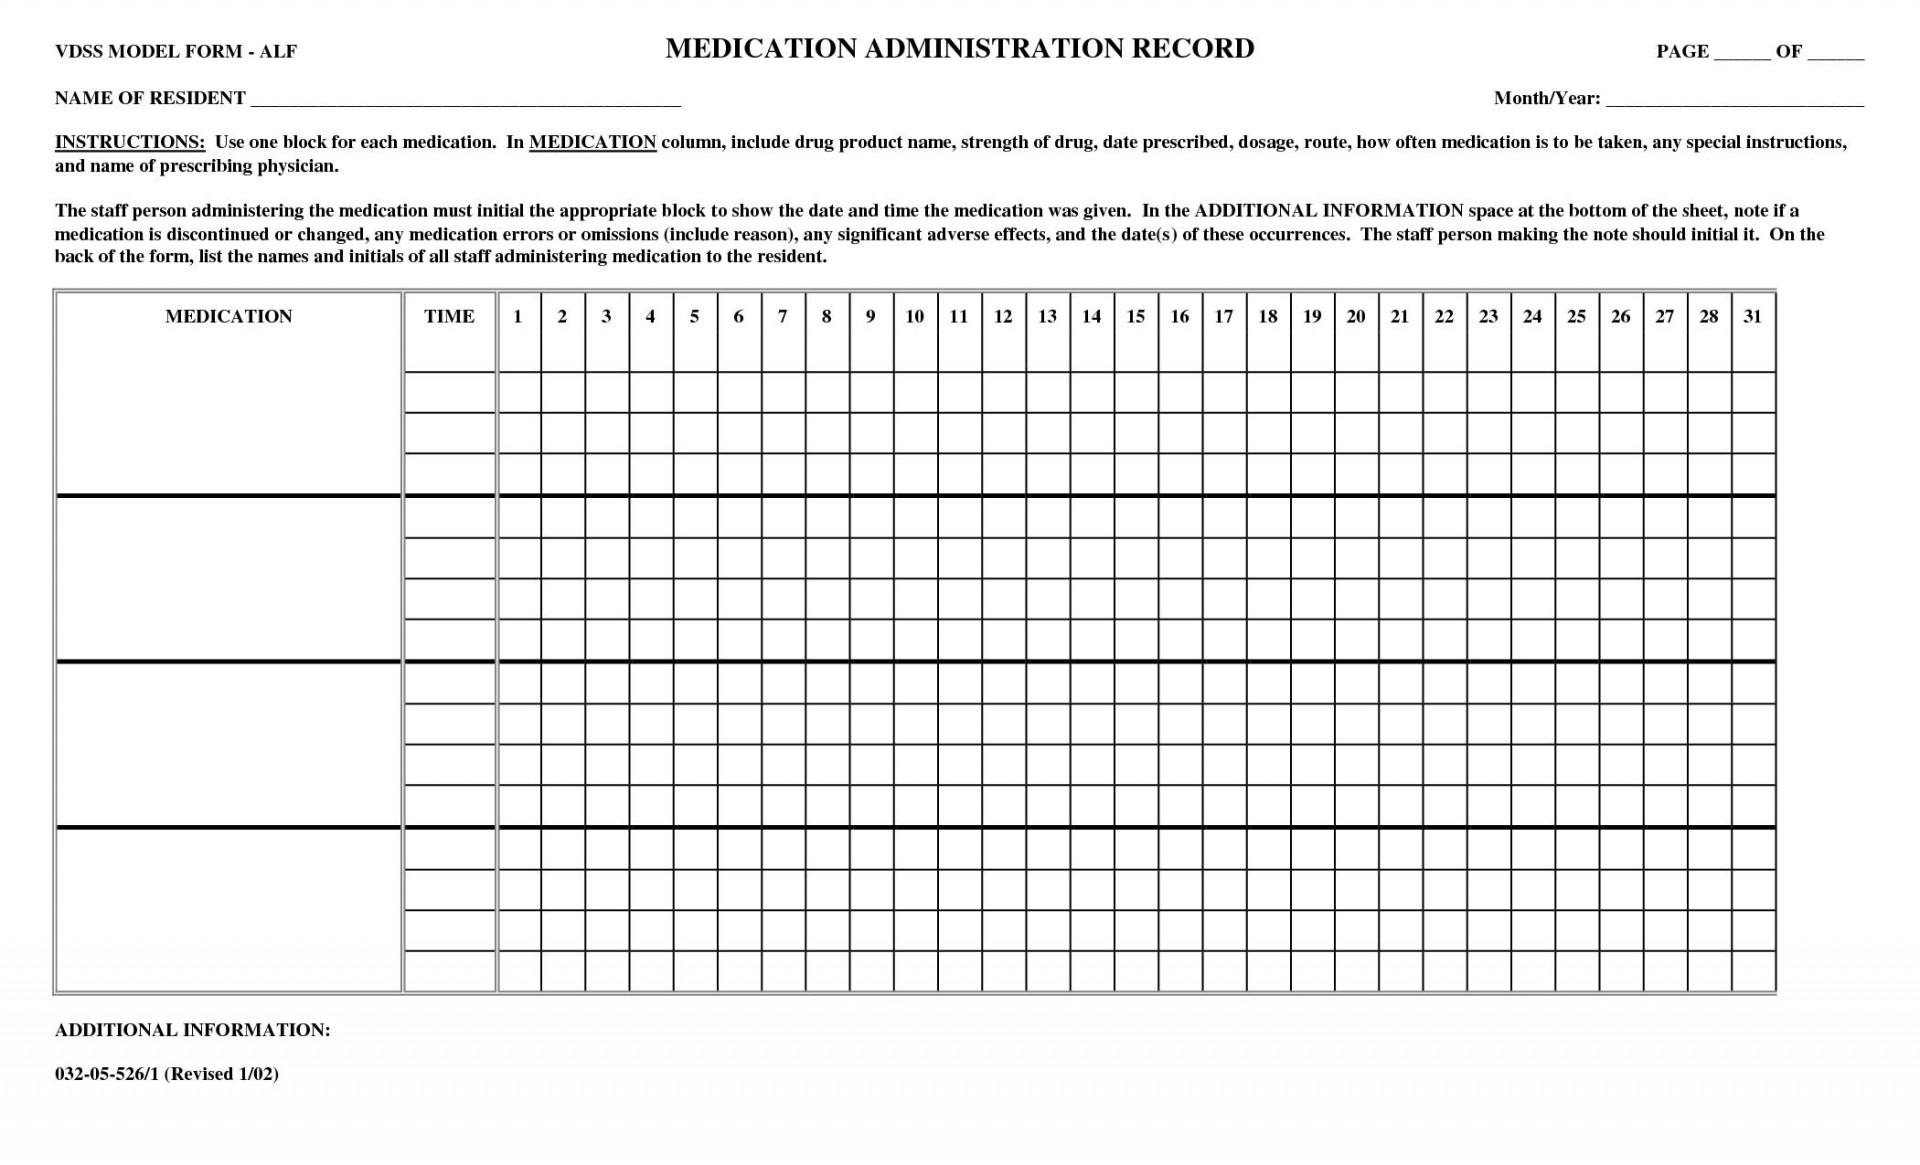 001 Formidable Medication Administration Record Template Design  Download For Home Use1920